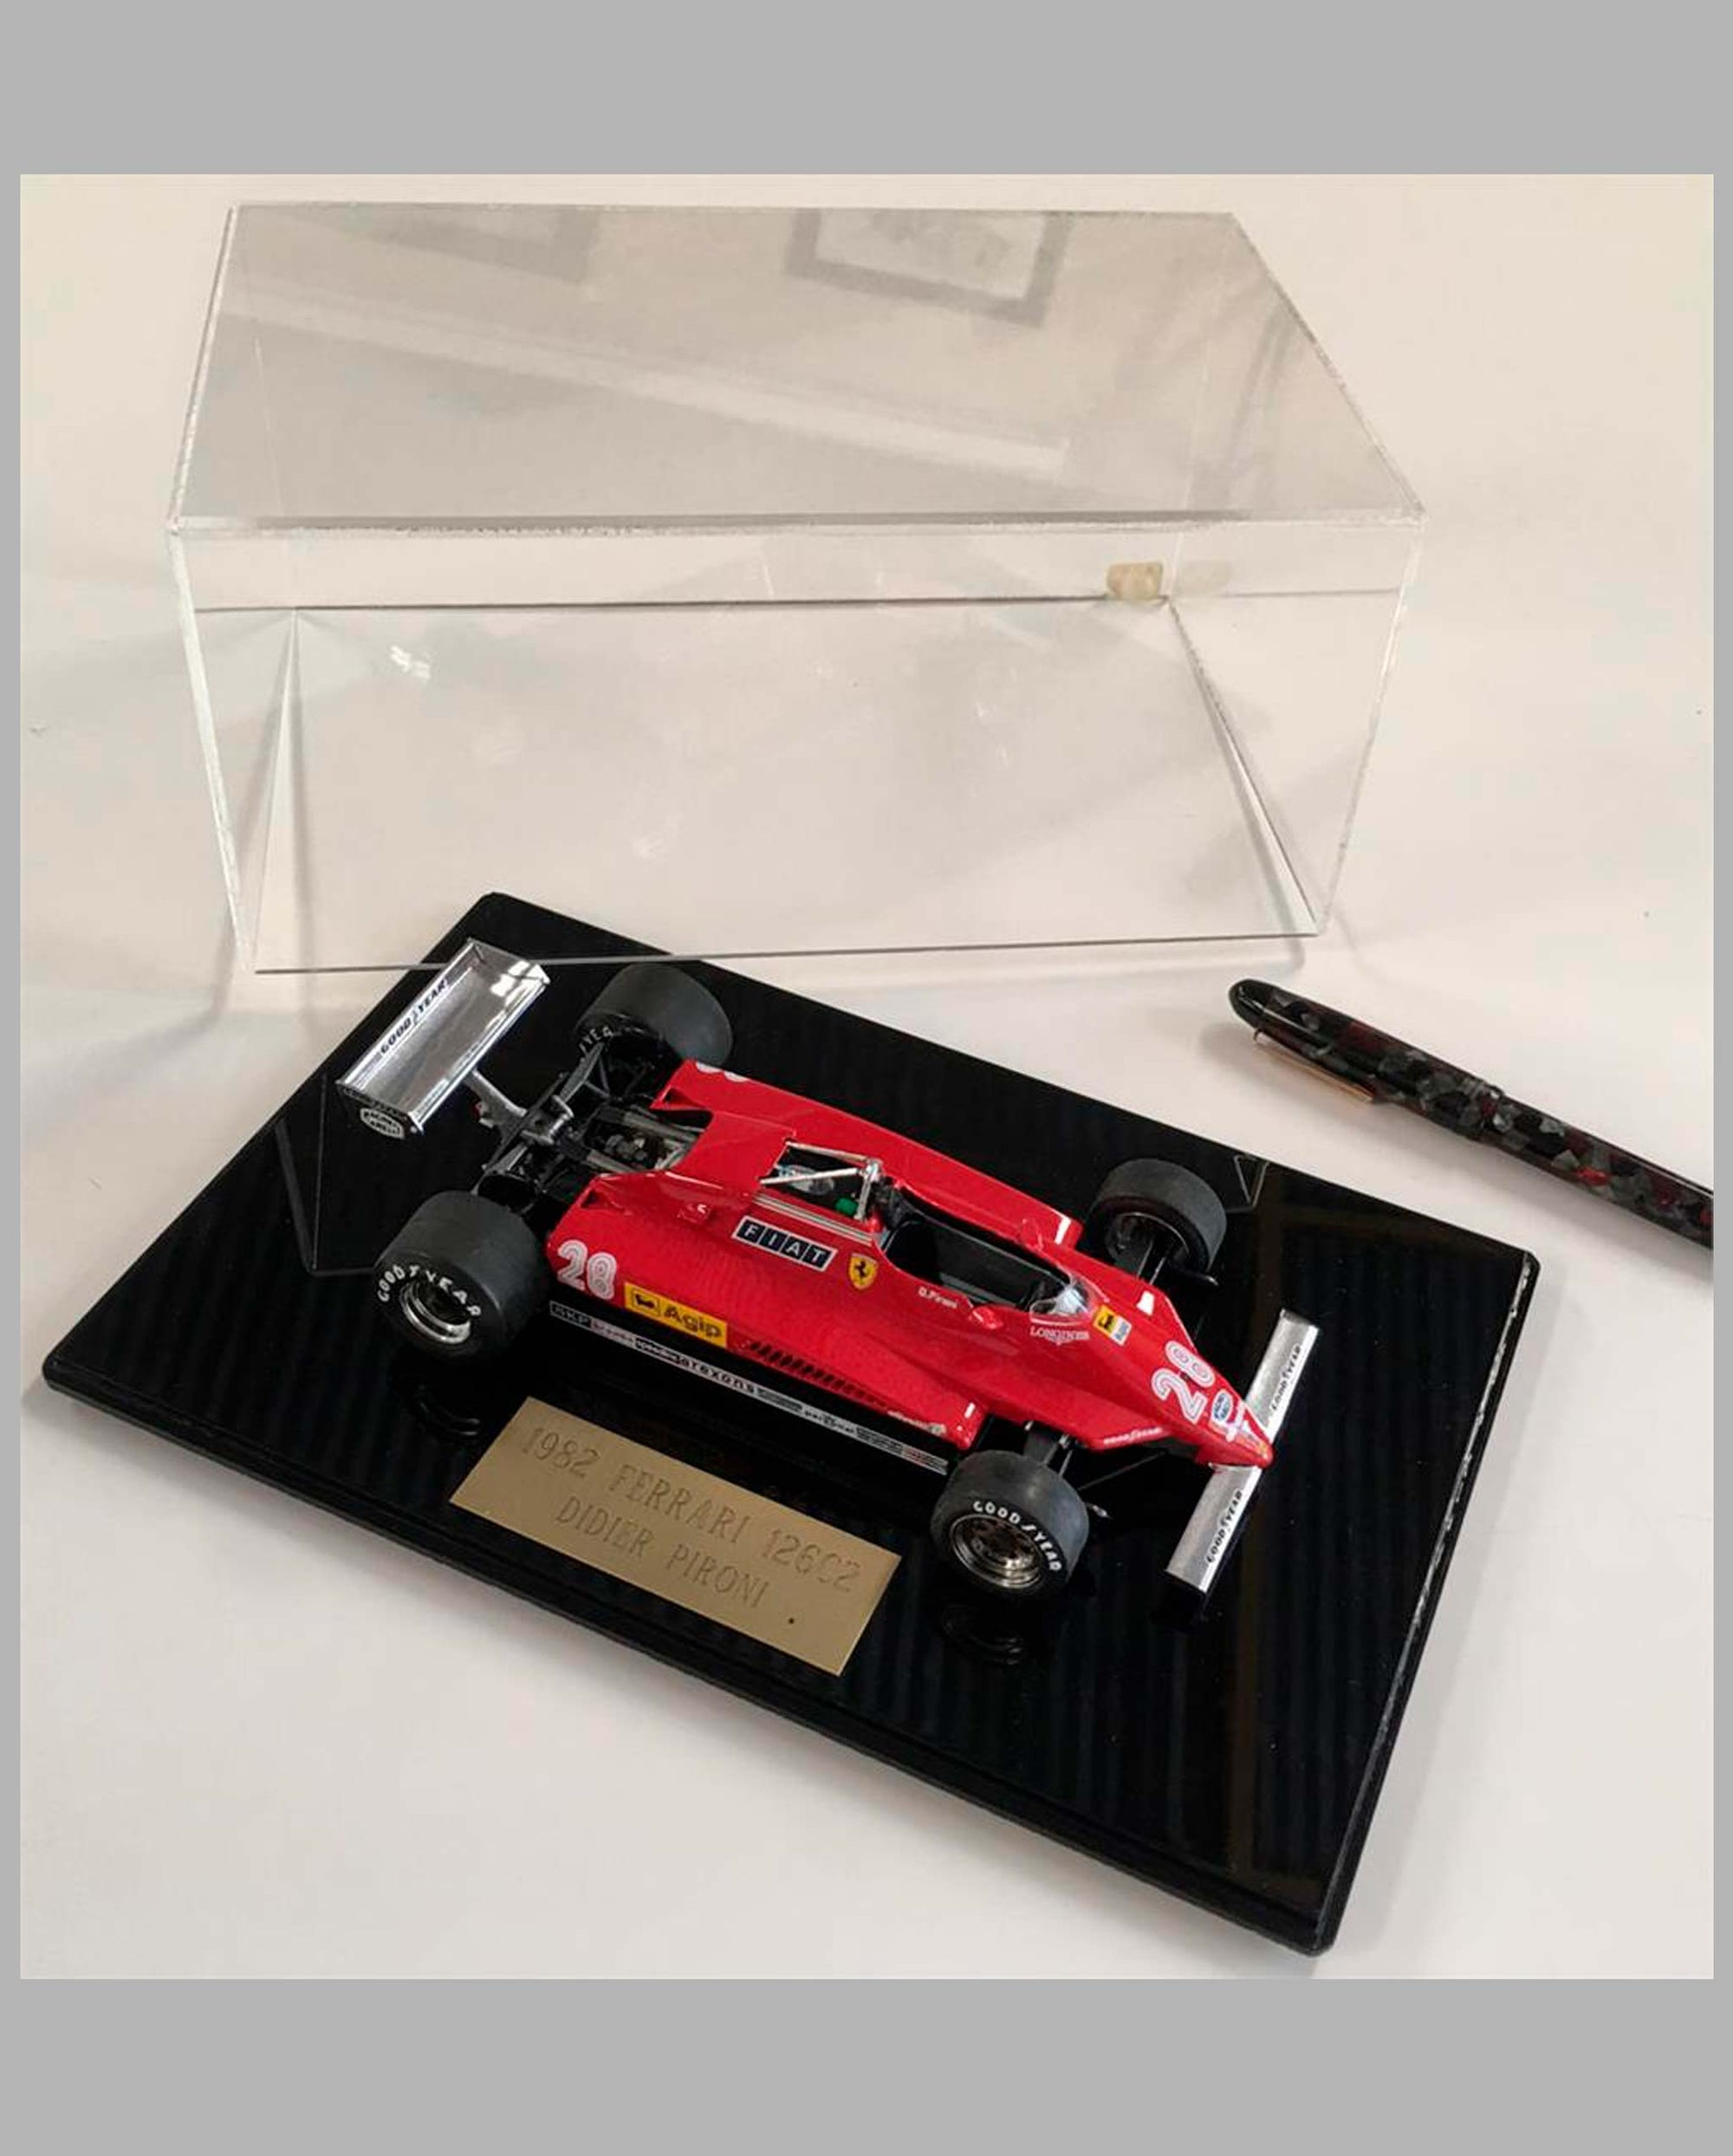 1982 Ferrari 126C2 hand built model by Jeff Alderman